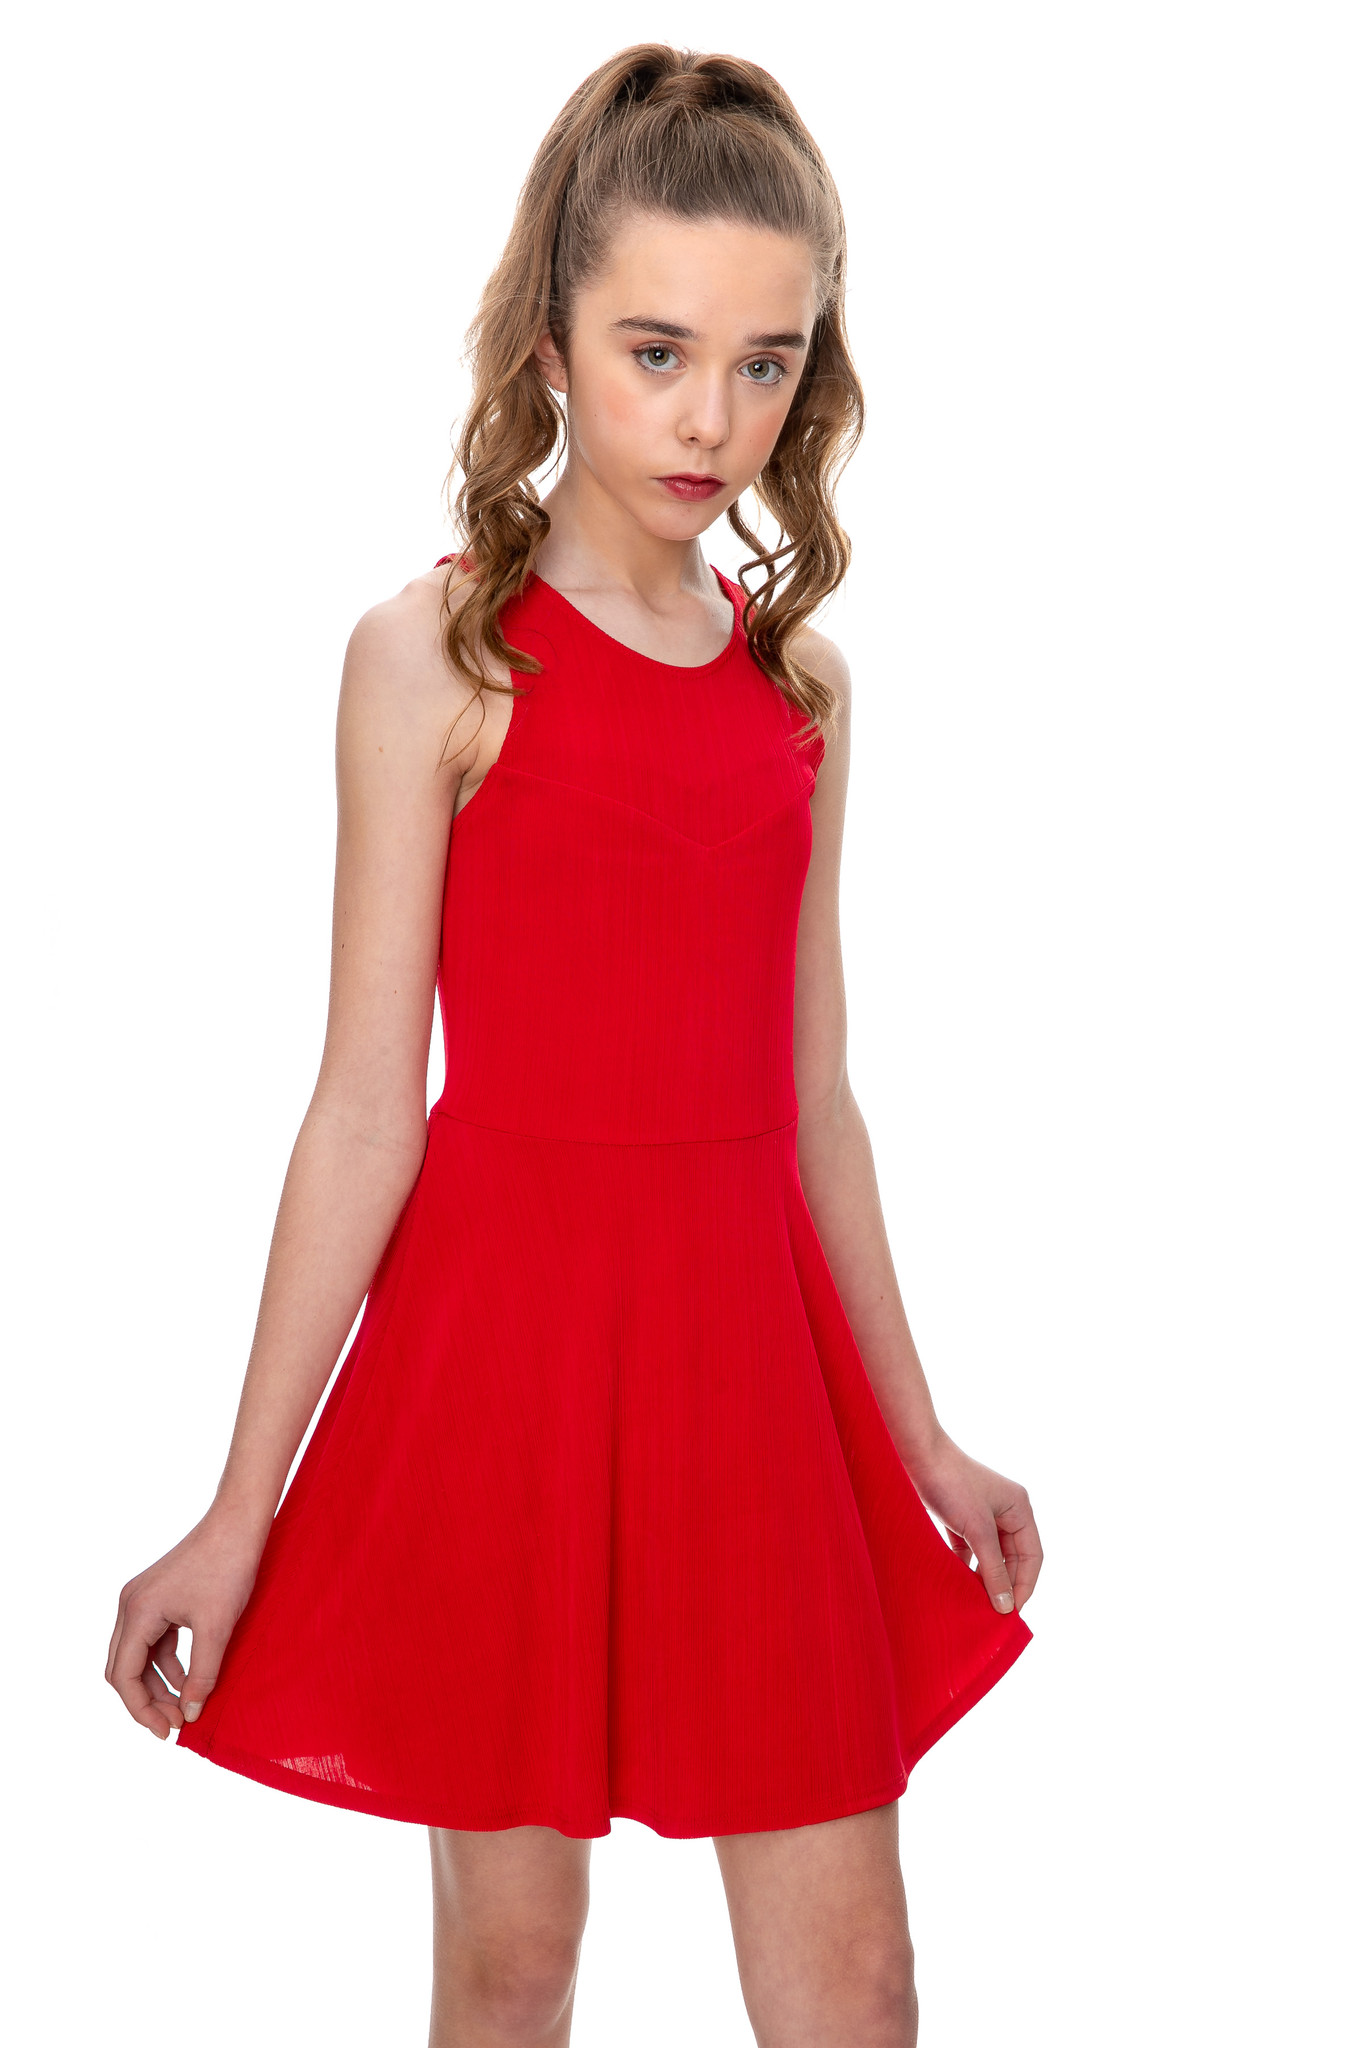 This is the sale Tween Girls Red Open Back Dress close view.